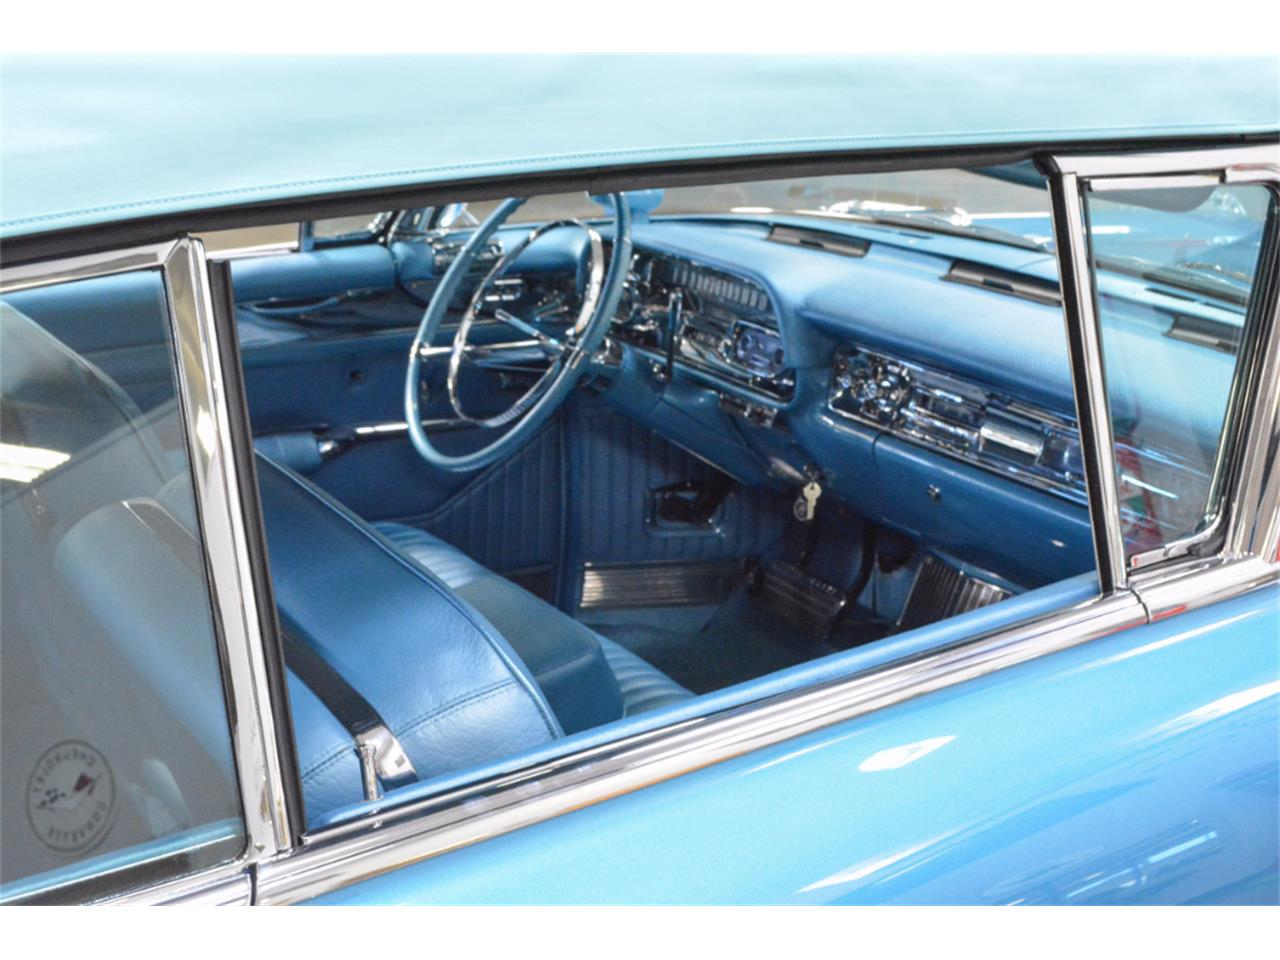 Large Picture of '57 Cadillac Eldorado located in Salem Ohio Auction Vehicle Offered by John Kufleitner's Galleria - LKLZ